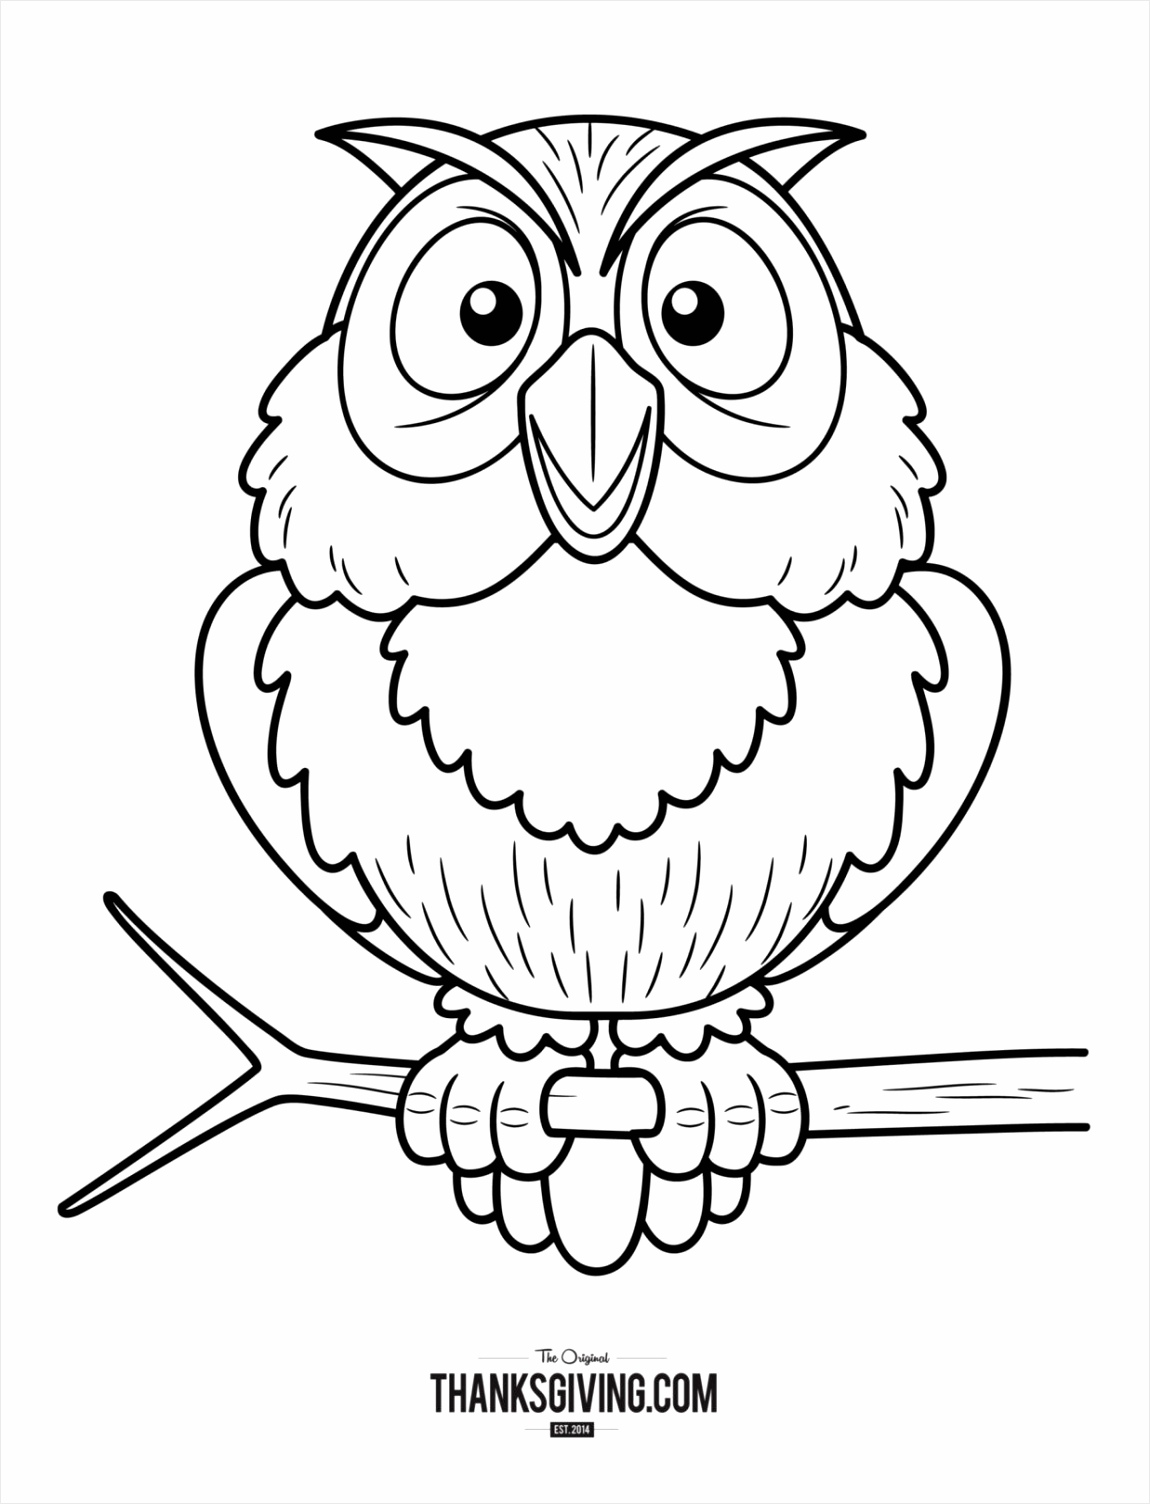 coloring hoot owl book for kids disney printable remarkable photo colouring images adult pictures to color pics cute mandala colored sheets free print and ideas mindfulness pages iyooa